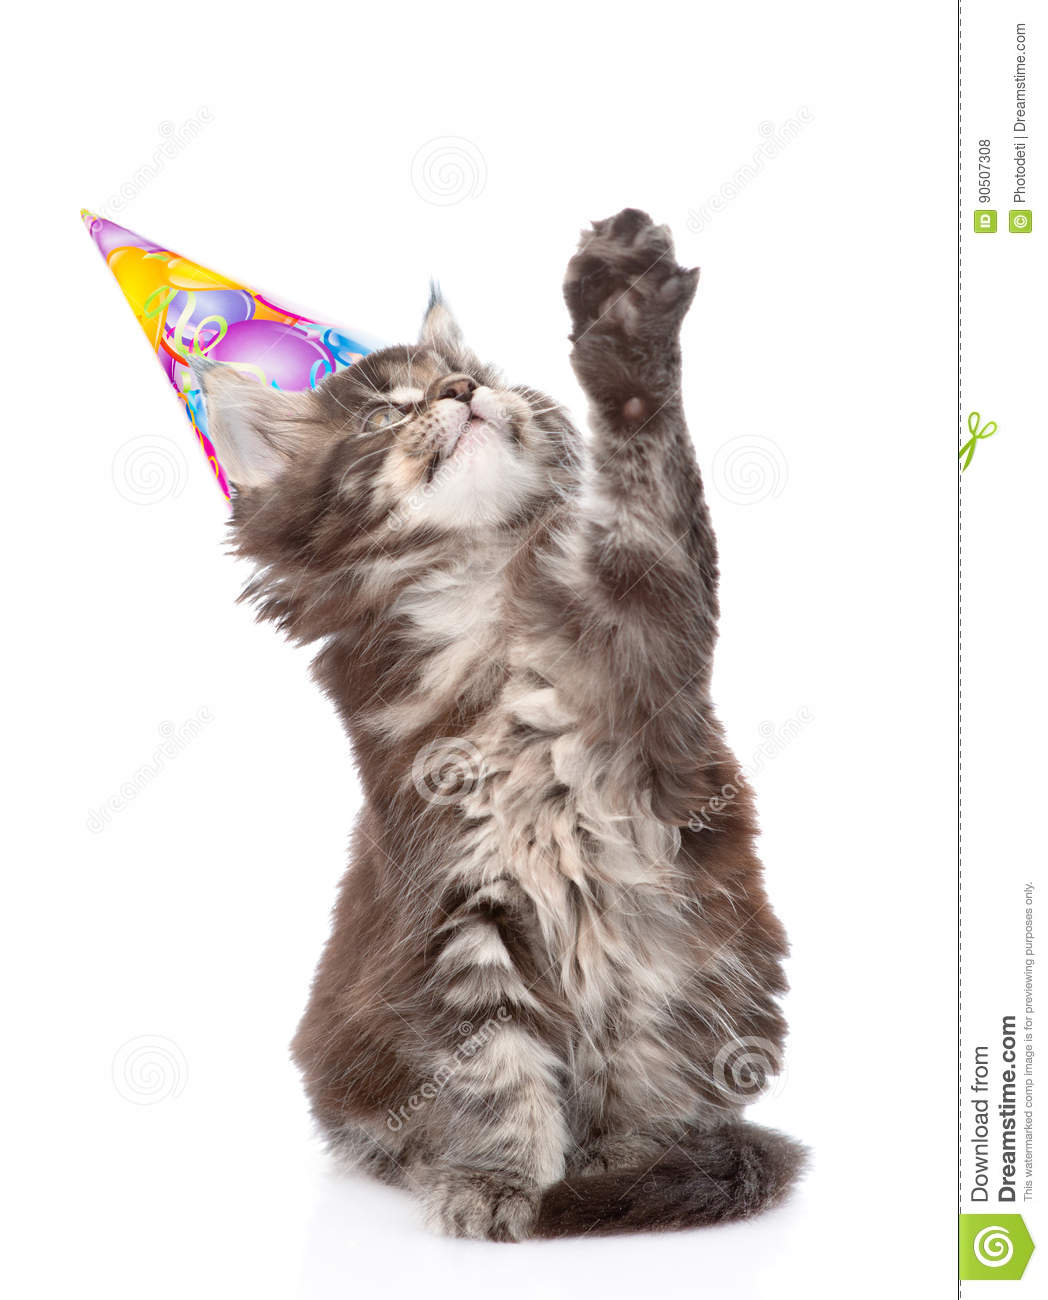 Playful Cat With Birthday Hat Looking Up Isolated On White